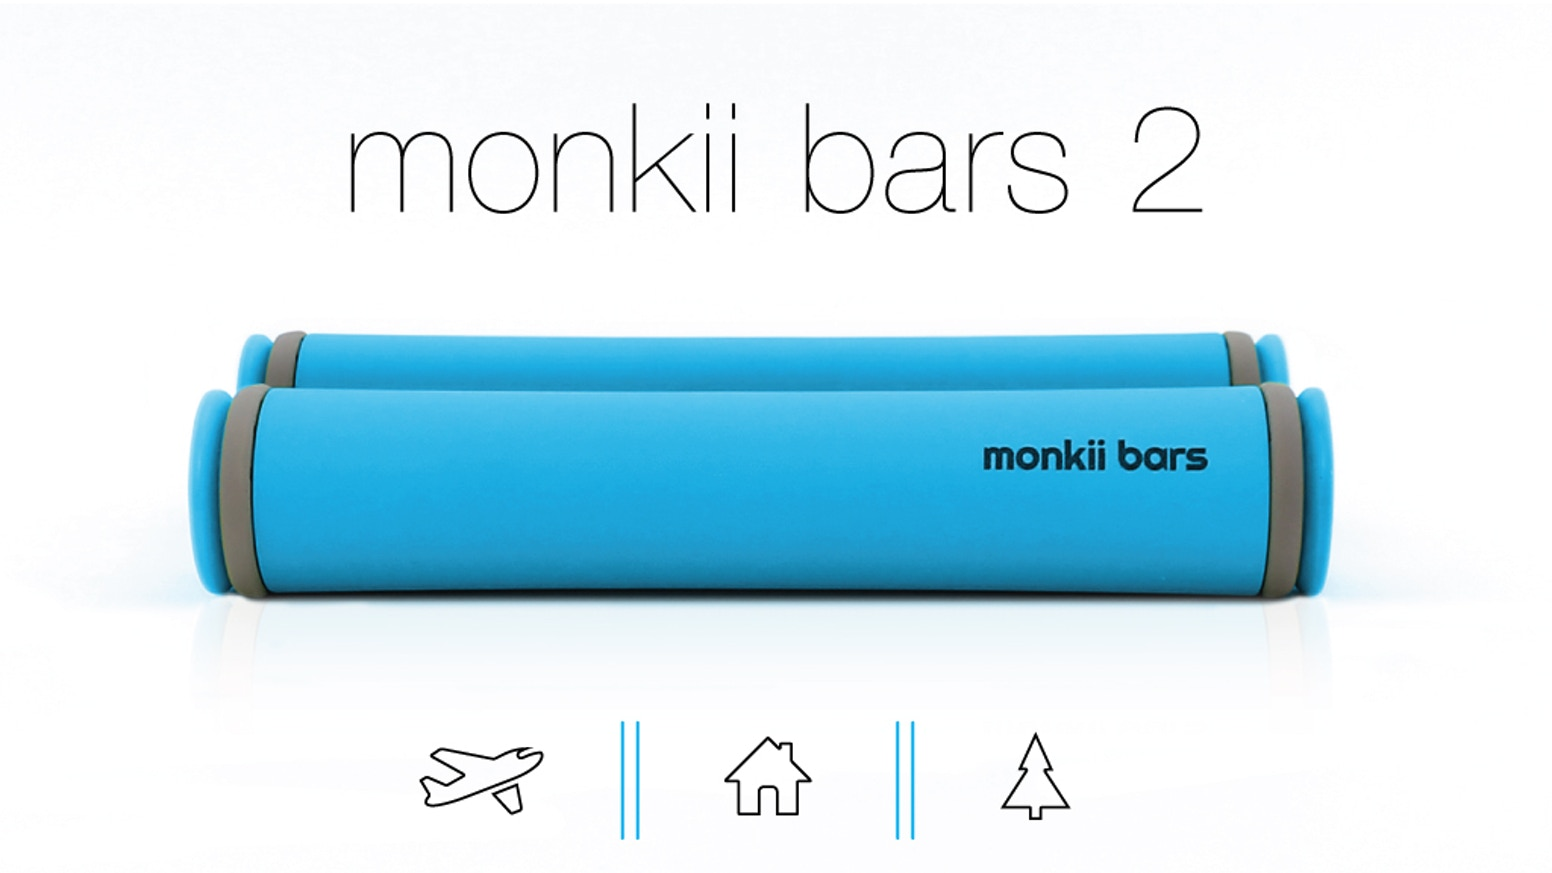 monkii bars 2 is our best-selling and most advanced training tool for those serious about taking their workouts outdoors.  We completely re-imagined bodyweight training and designed a device that is ultra-portable, feature-packed and insanely-challenging.